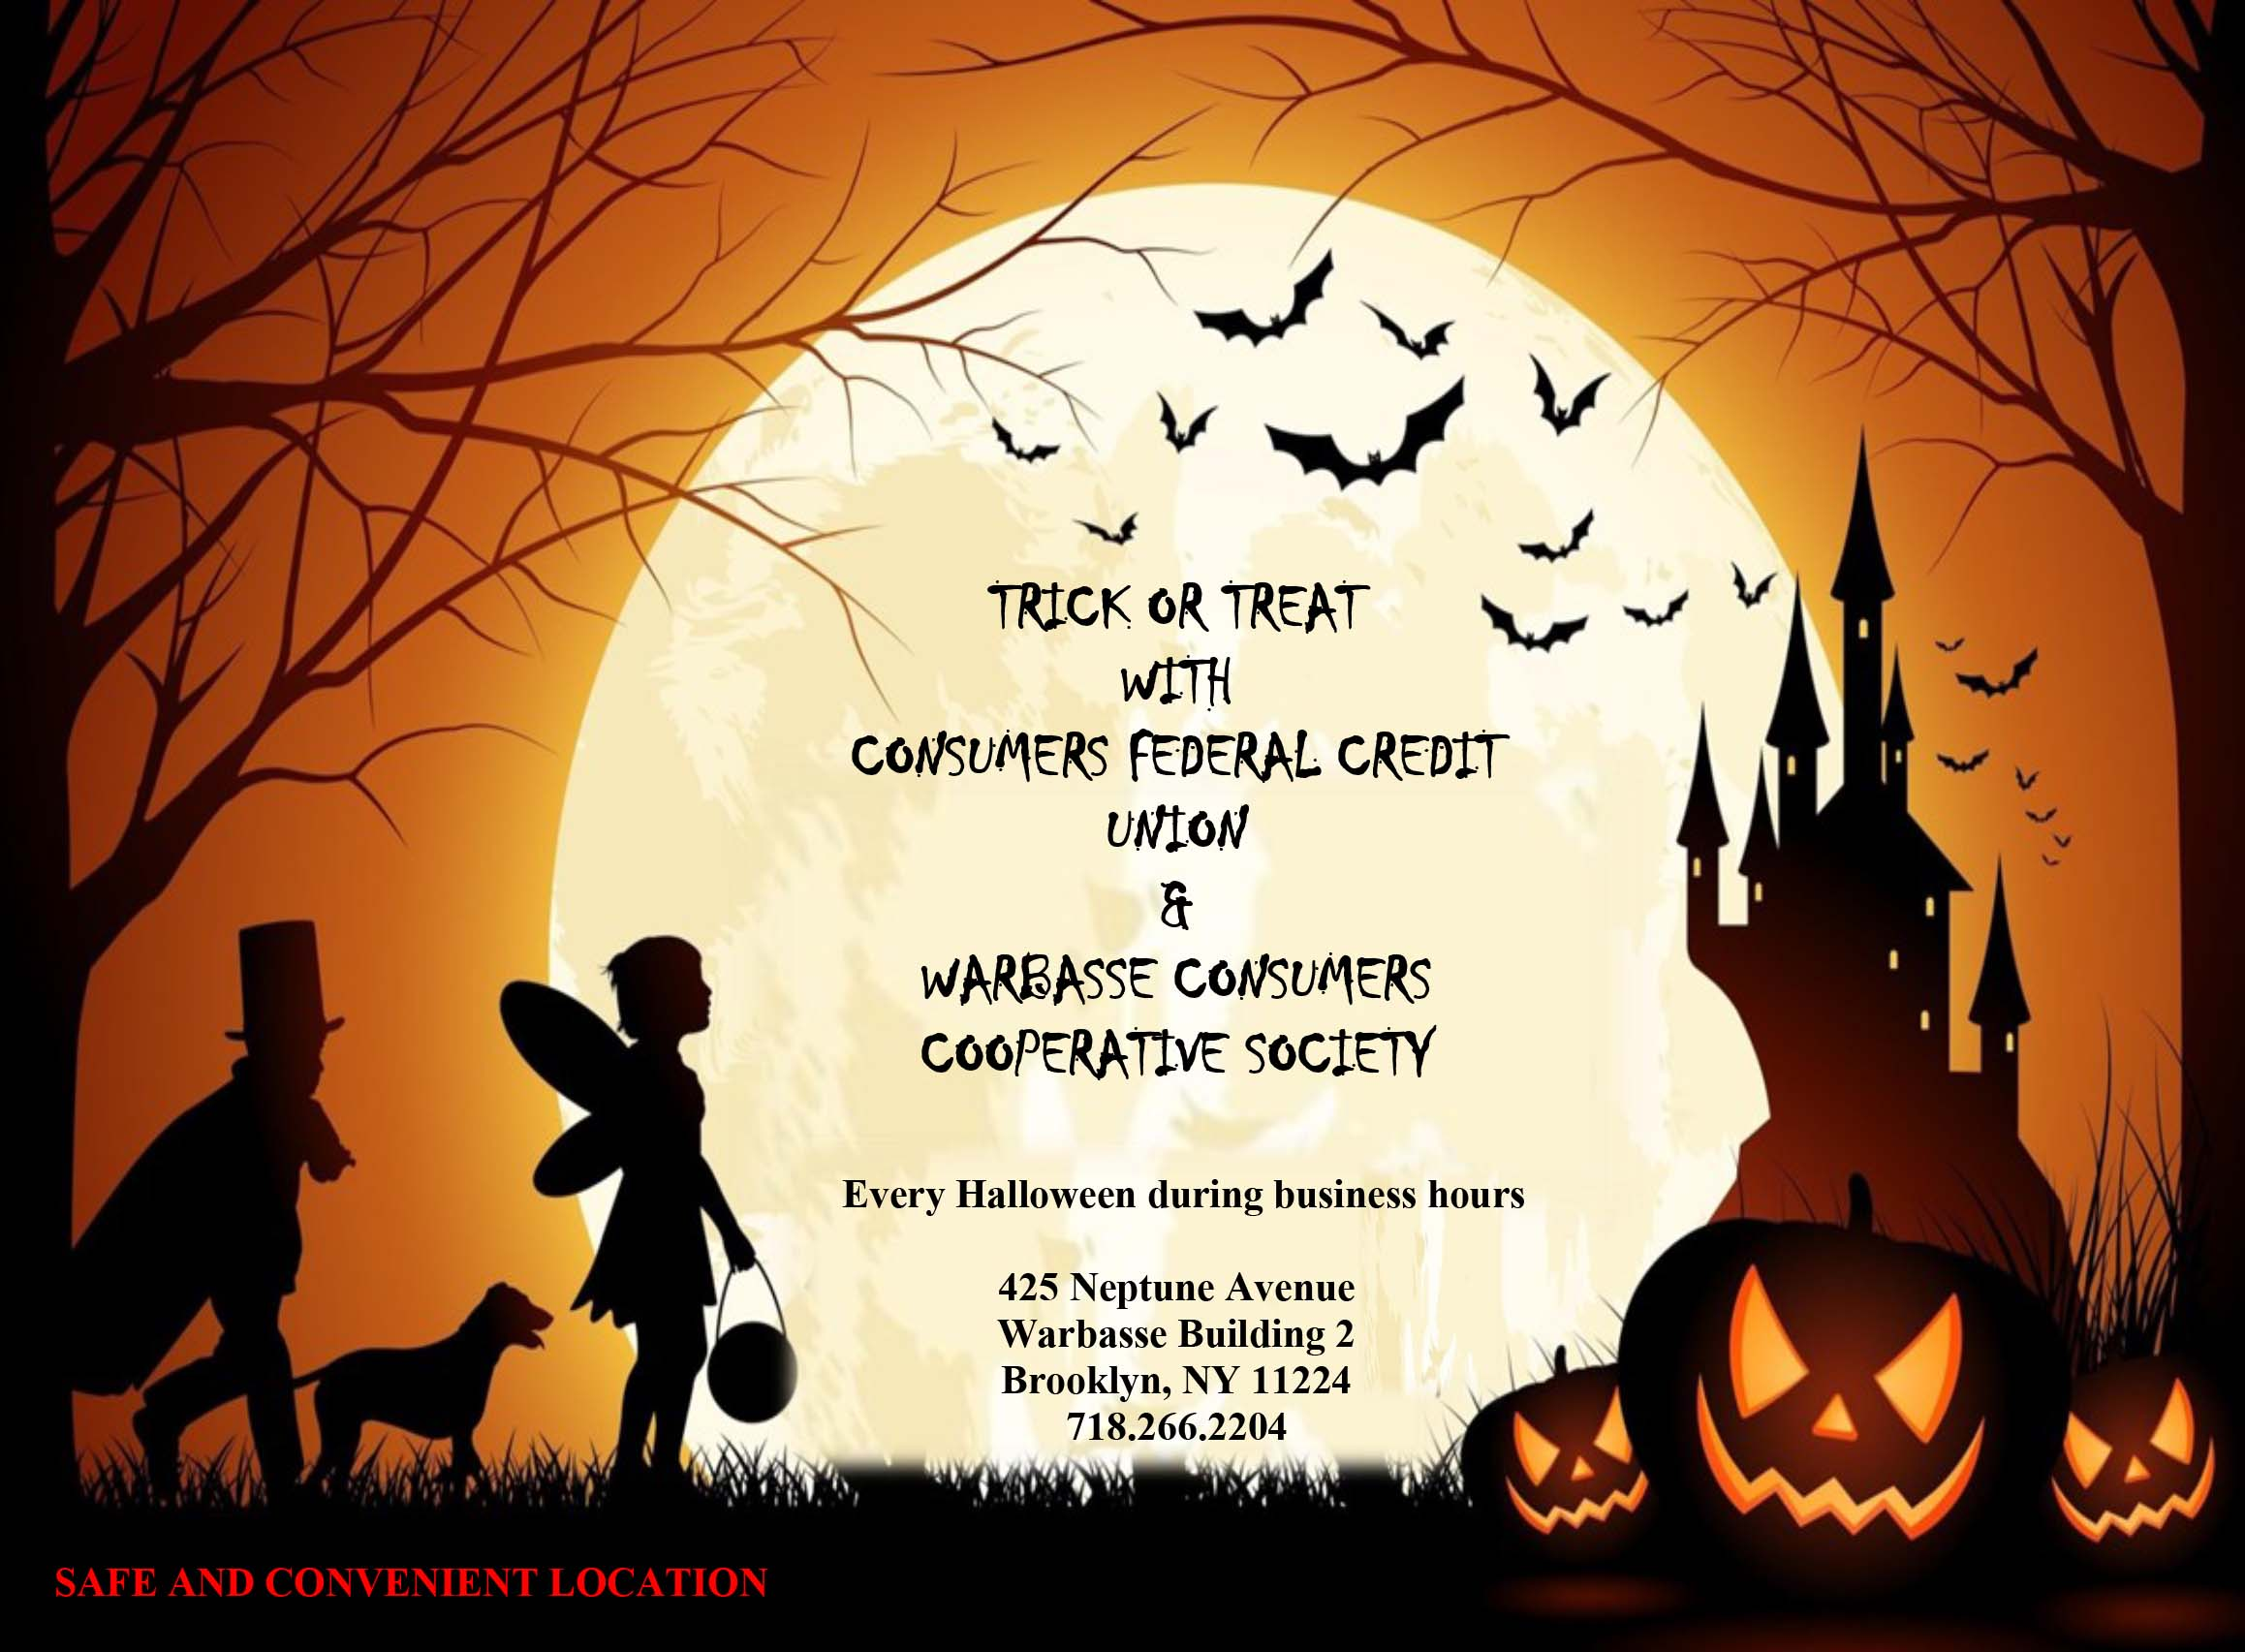 Trick or Treat with Consumers Federal Credit Union